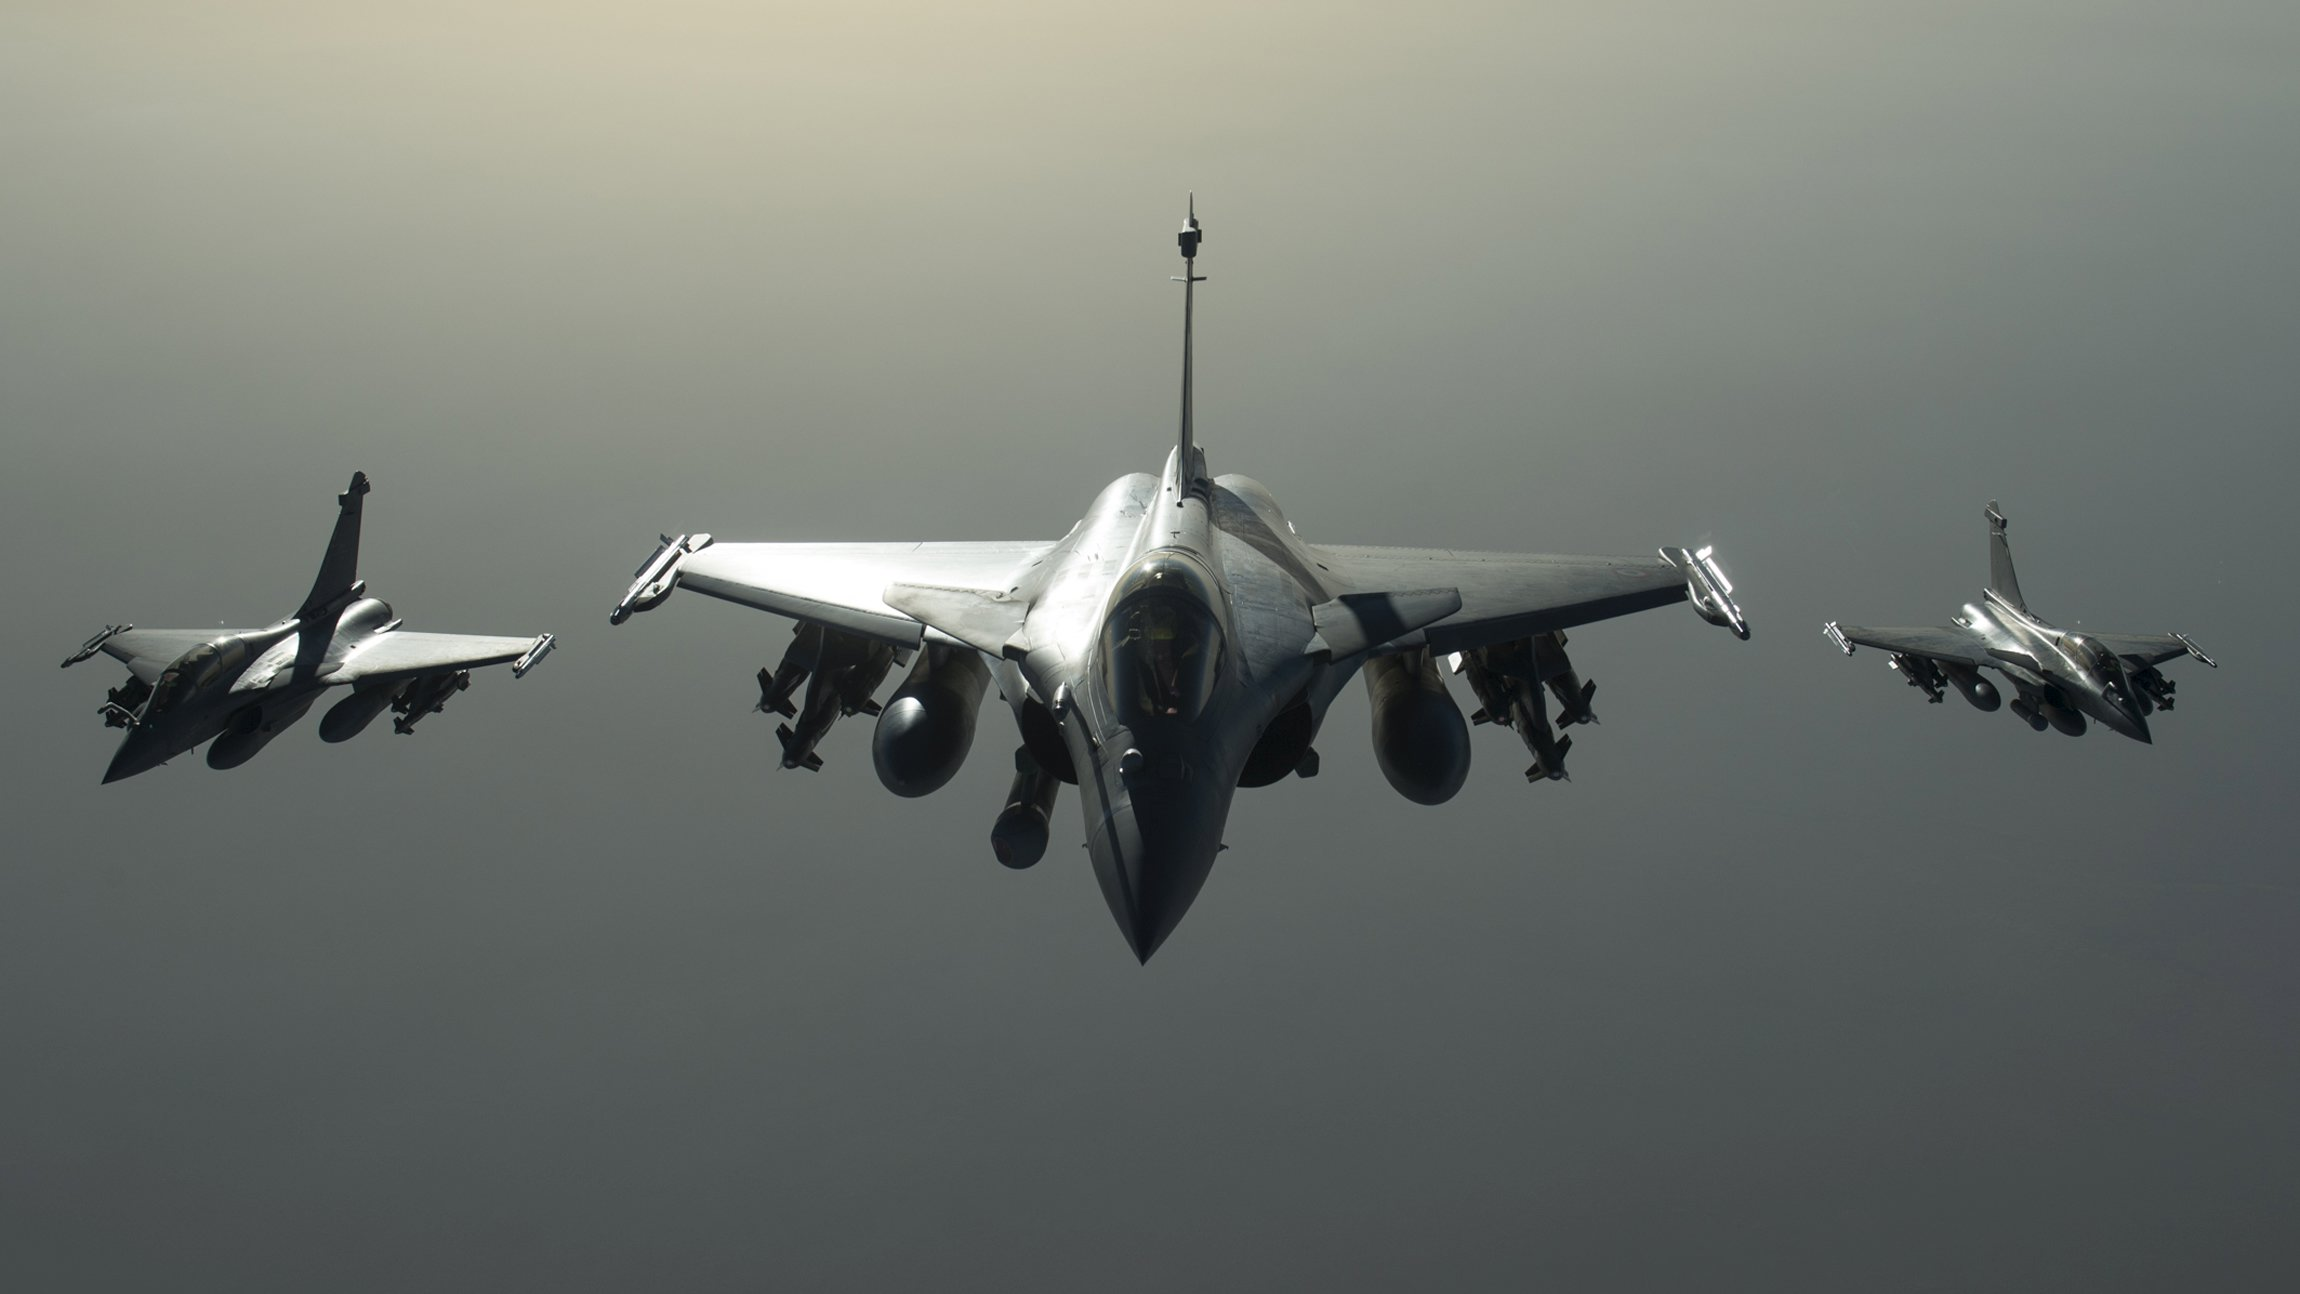 French Army Rafale fighter jets are seen in flight during an operation against Syria, in this handout photo distributed by the French Defense Audiovisial Communication and Production Unit (ECPAD) and realeased September 27, 2015. France said on Sunday it launched its first air strikes in Syria, destroying an Islamic State training camp in the east of the country to prevent the group from carrying out attacks against French interests and to protect Syrian civilians. The French Presisent said from New York that six fighter jets had destroyed their targets near Deir ez-Zor and that more operations could take place in coming weeks to protect France and Syrian civilians.     REUTERS/ECPAD/Handout     FOR EDITORIAL USE ONLY. NOT FOR SALE FOR MARKETING OR ADVERTISING CAMPAIGNS THIS IMAGE HAS BEEN SUPPLIED BY A THIRD PARTY. IT IS DISTRIBUTED, EXACTLY AS RECEIVED BY REUTERS, AS A SERVICE TO CLIENTS NO SALES